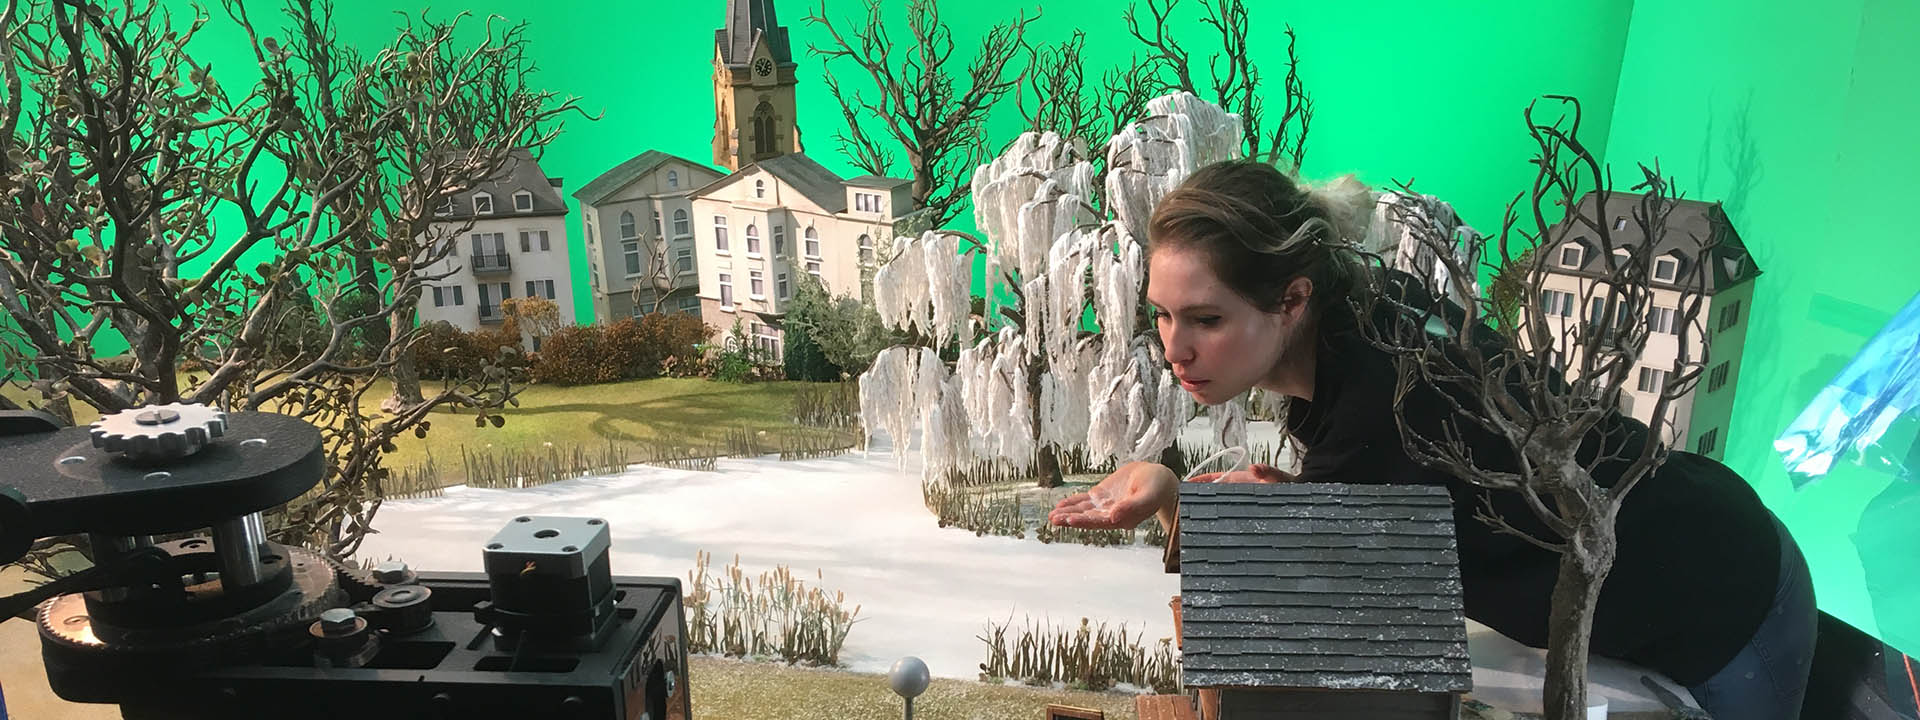 Animation Services - A model set for a stop motion animation.